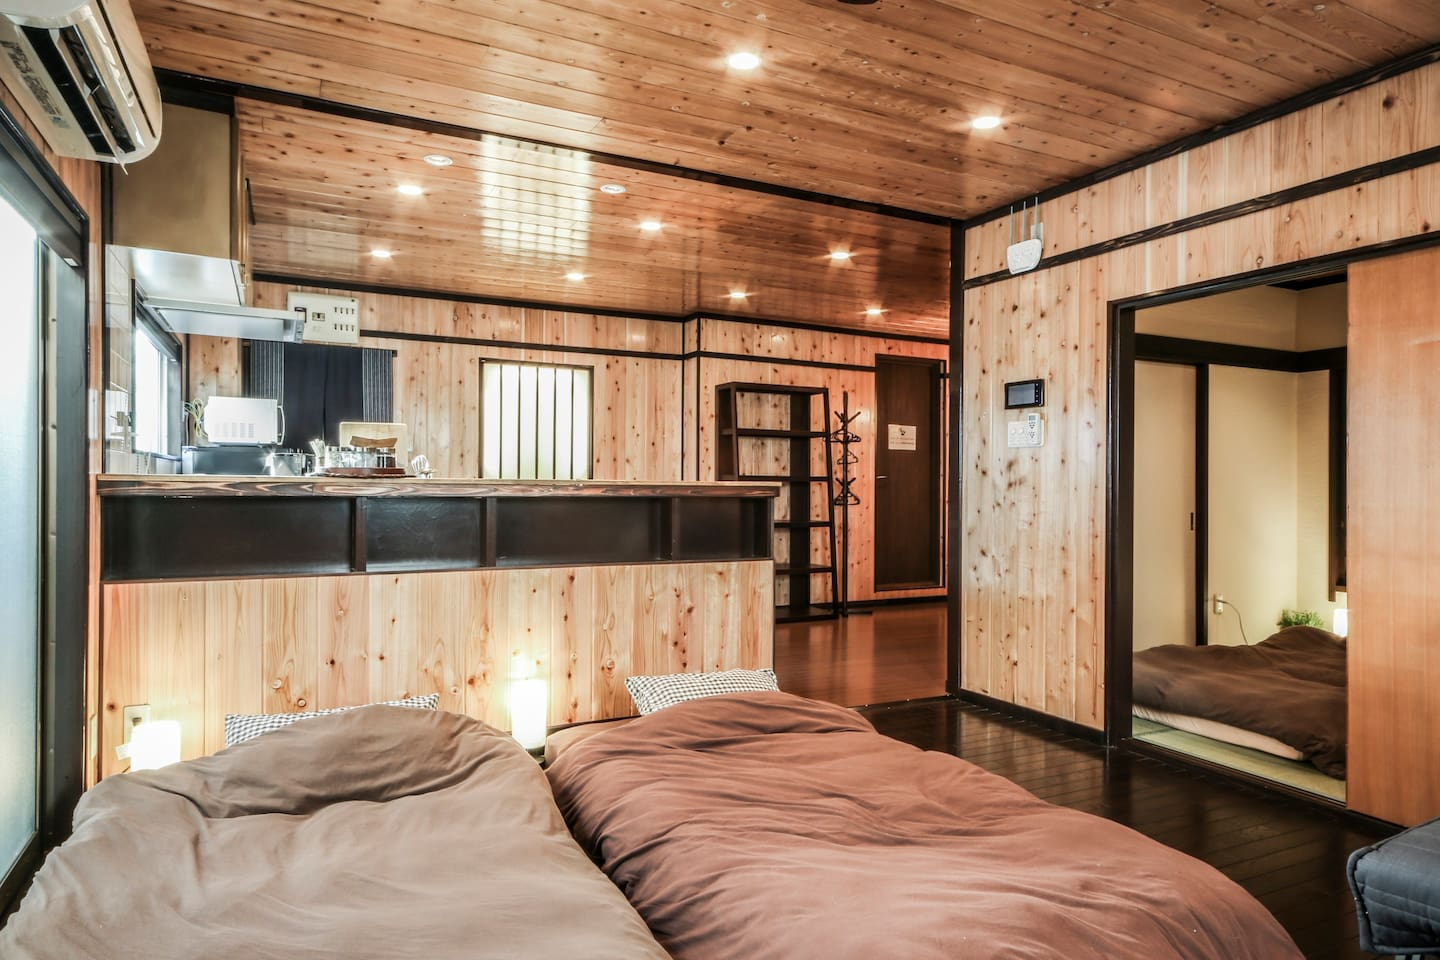 Surrounded by Natural Cedar Wood-Panel